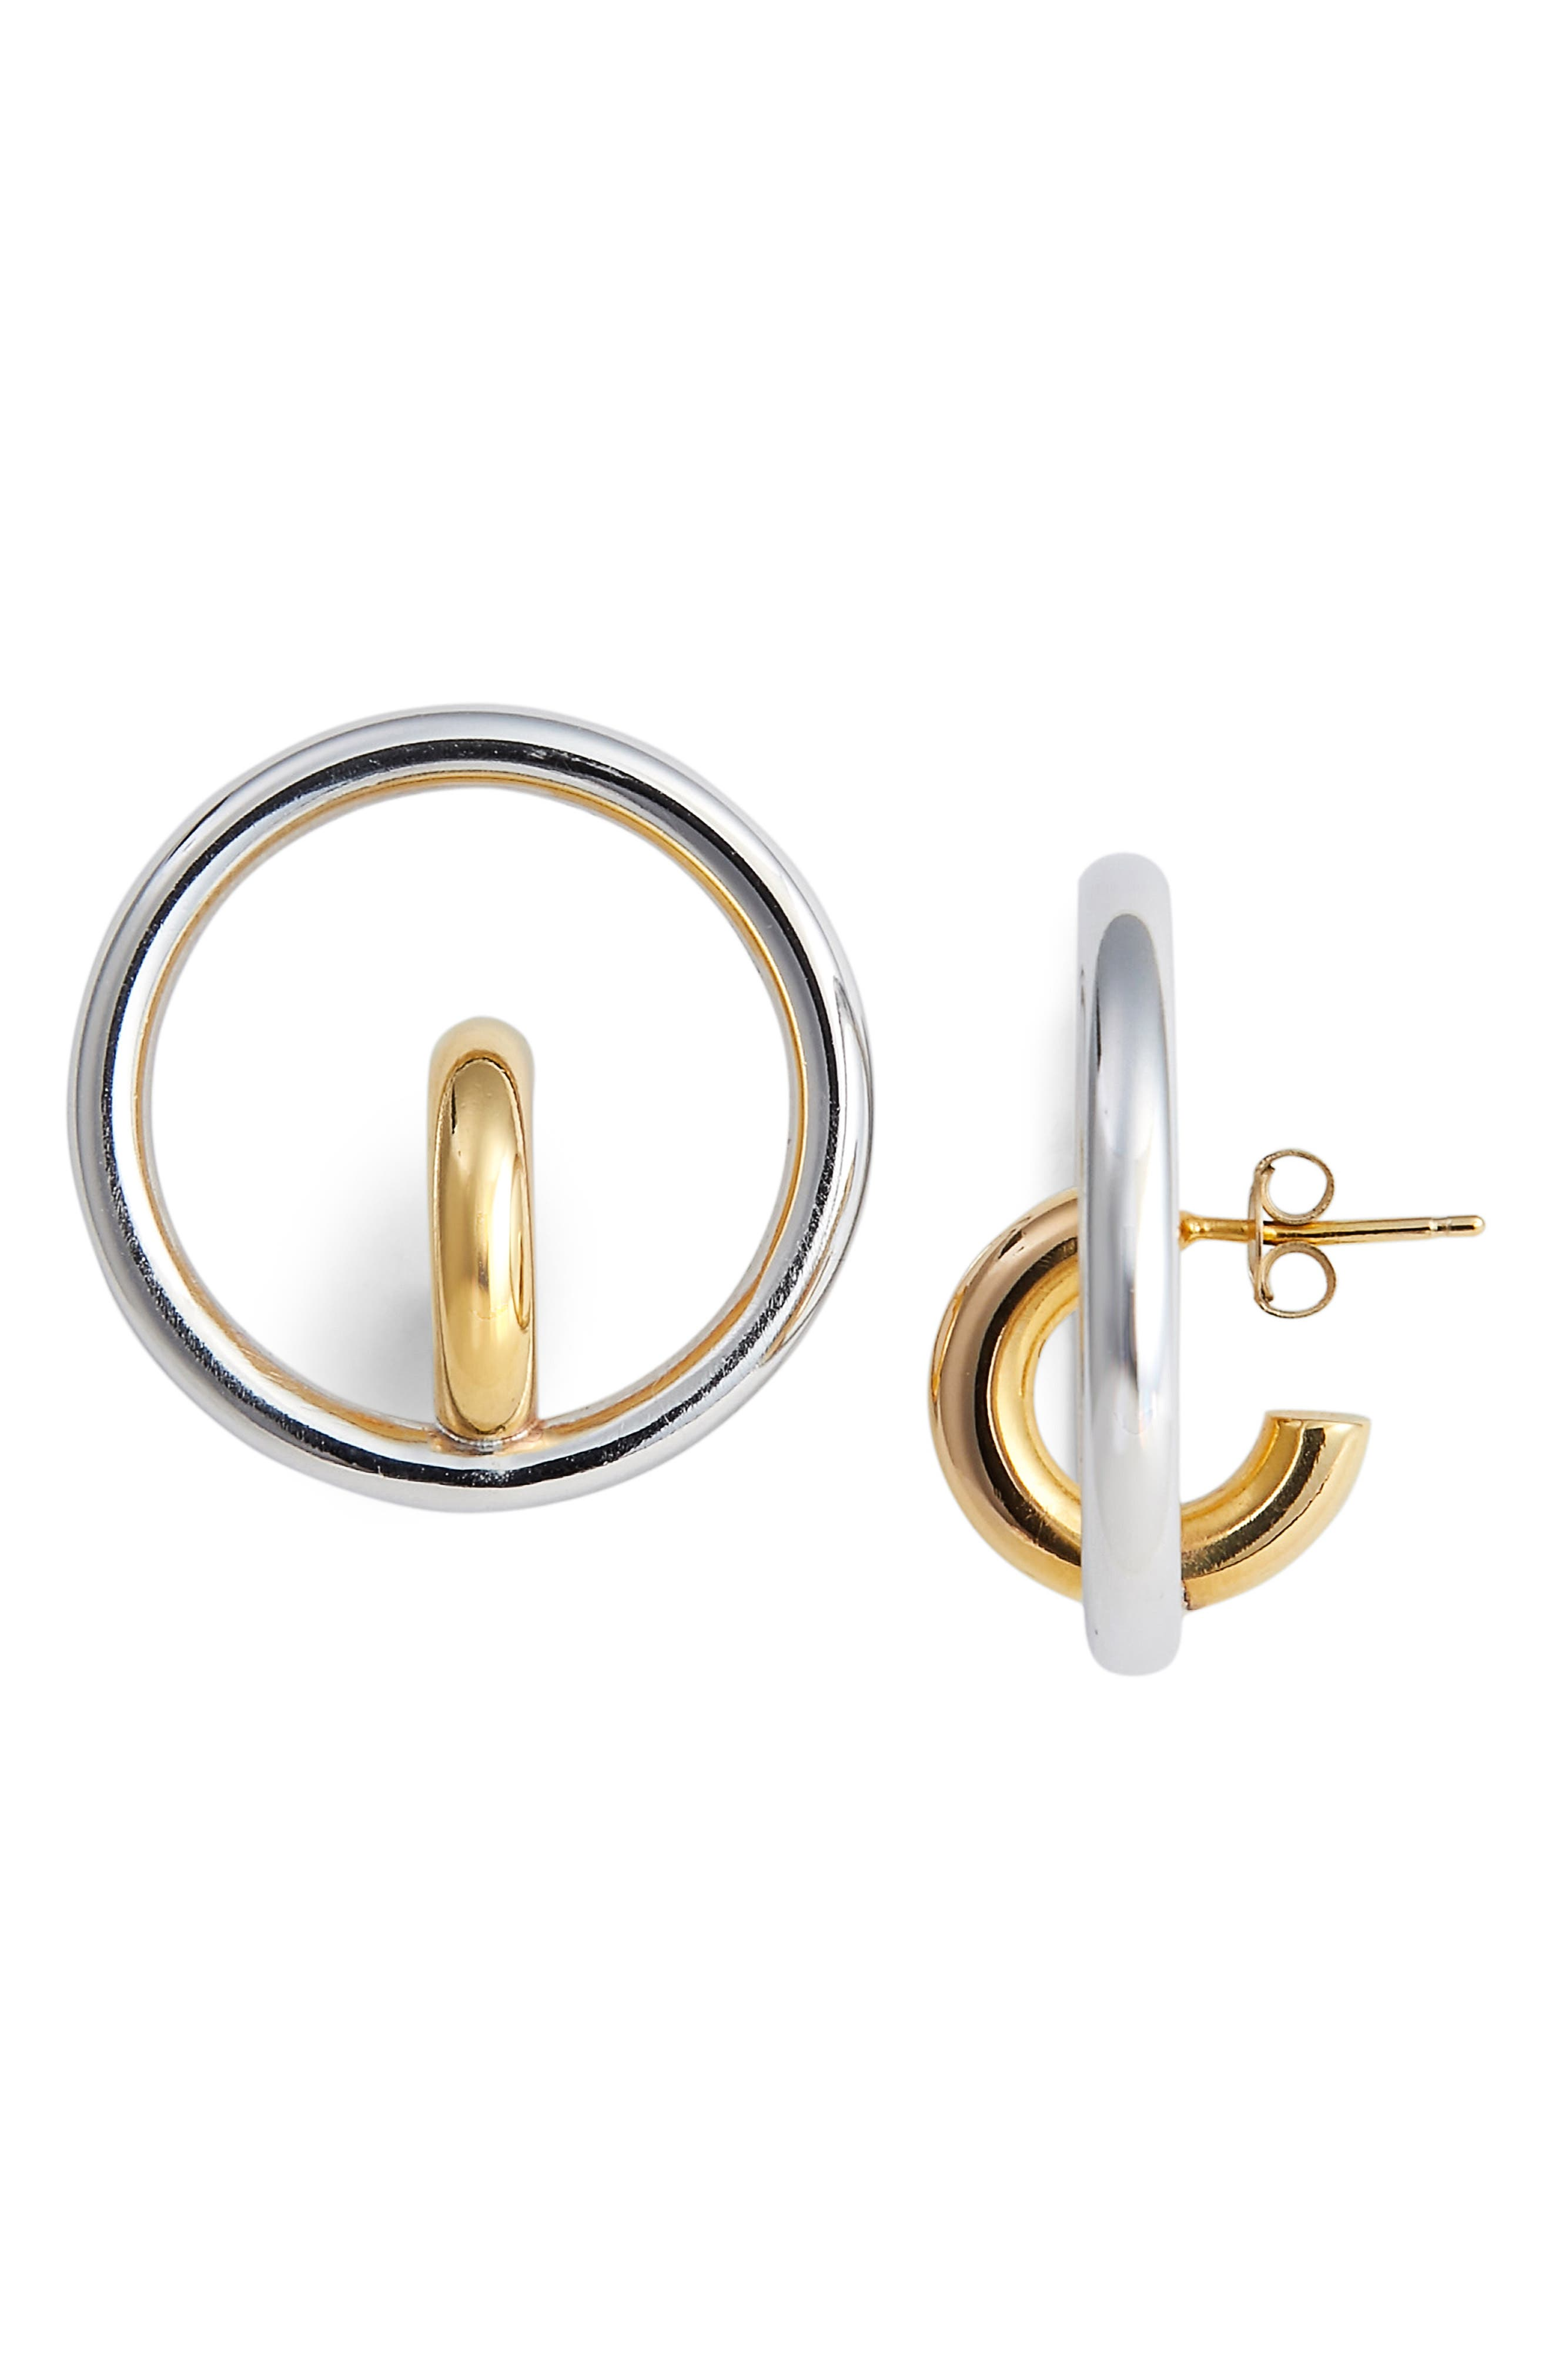 Saturn Blow Medium Hoop Earrings,                         Main,                         color, Yellow Silver